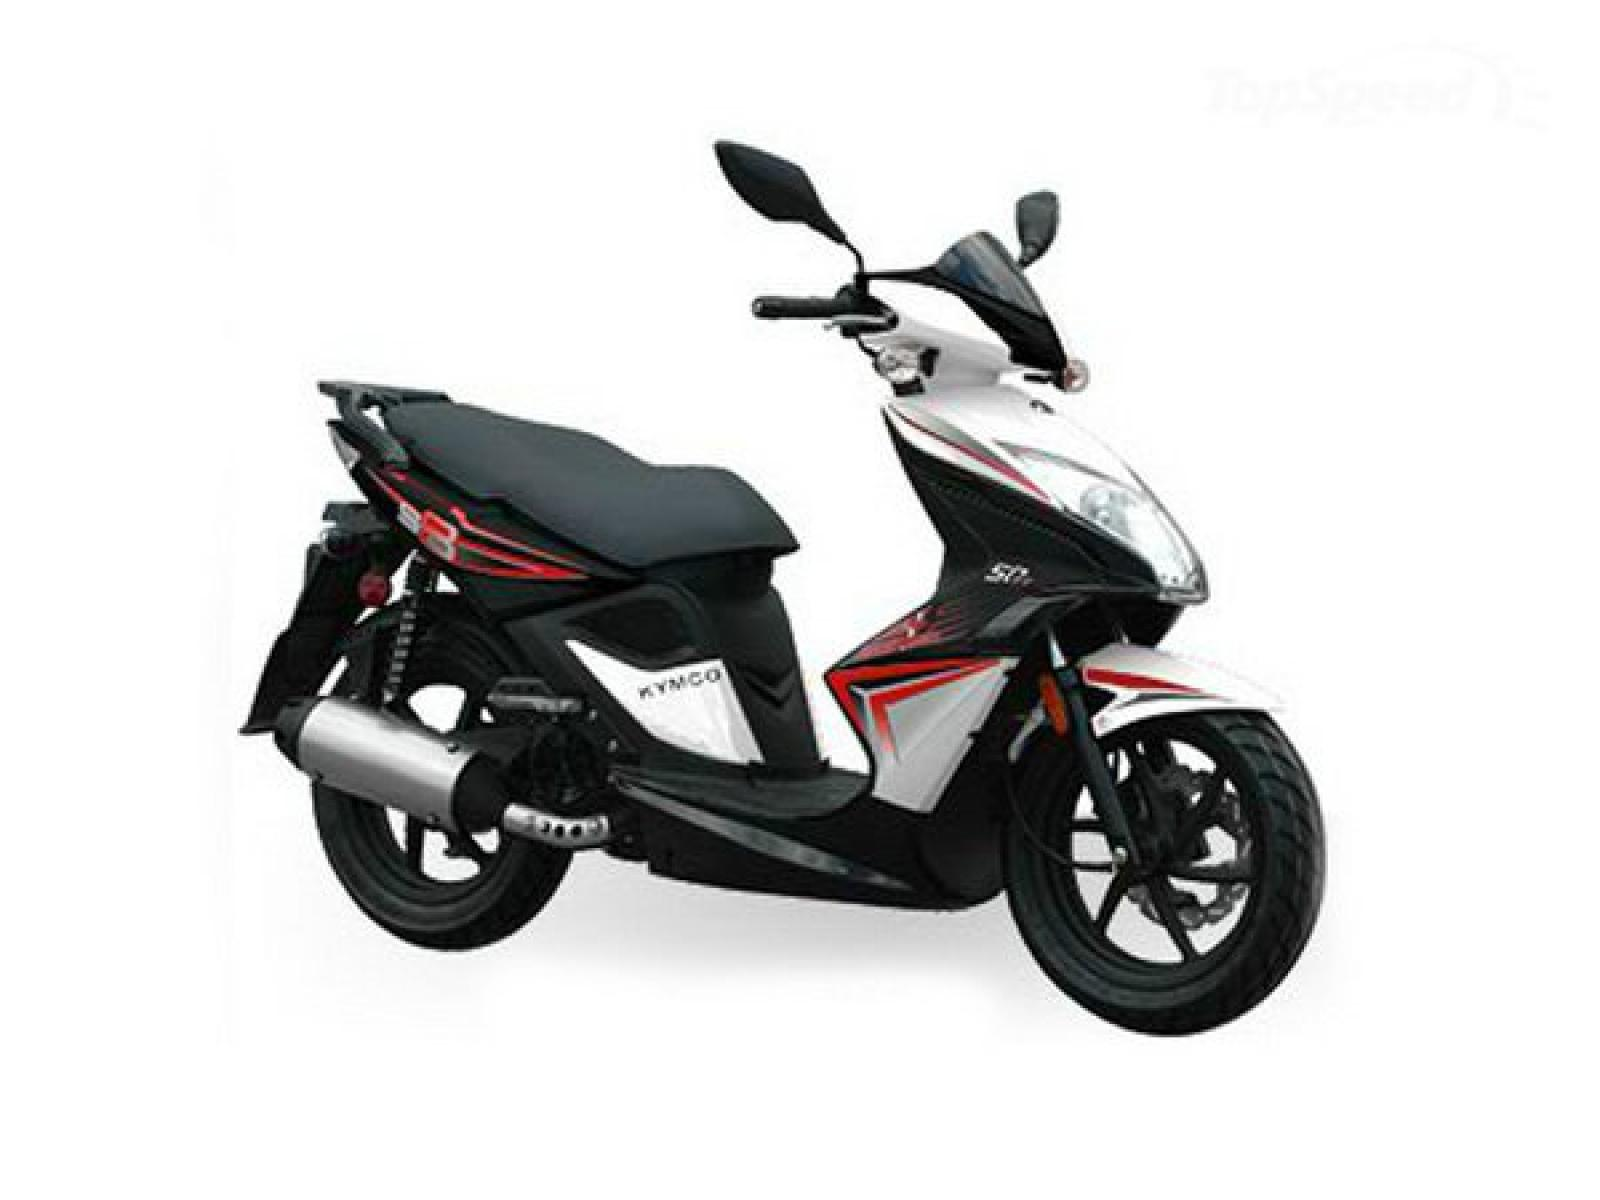 Kymco Heroism 125 2002 images #101106